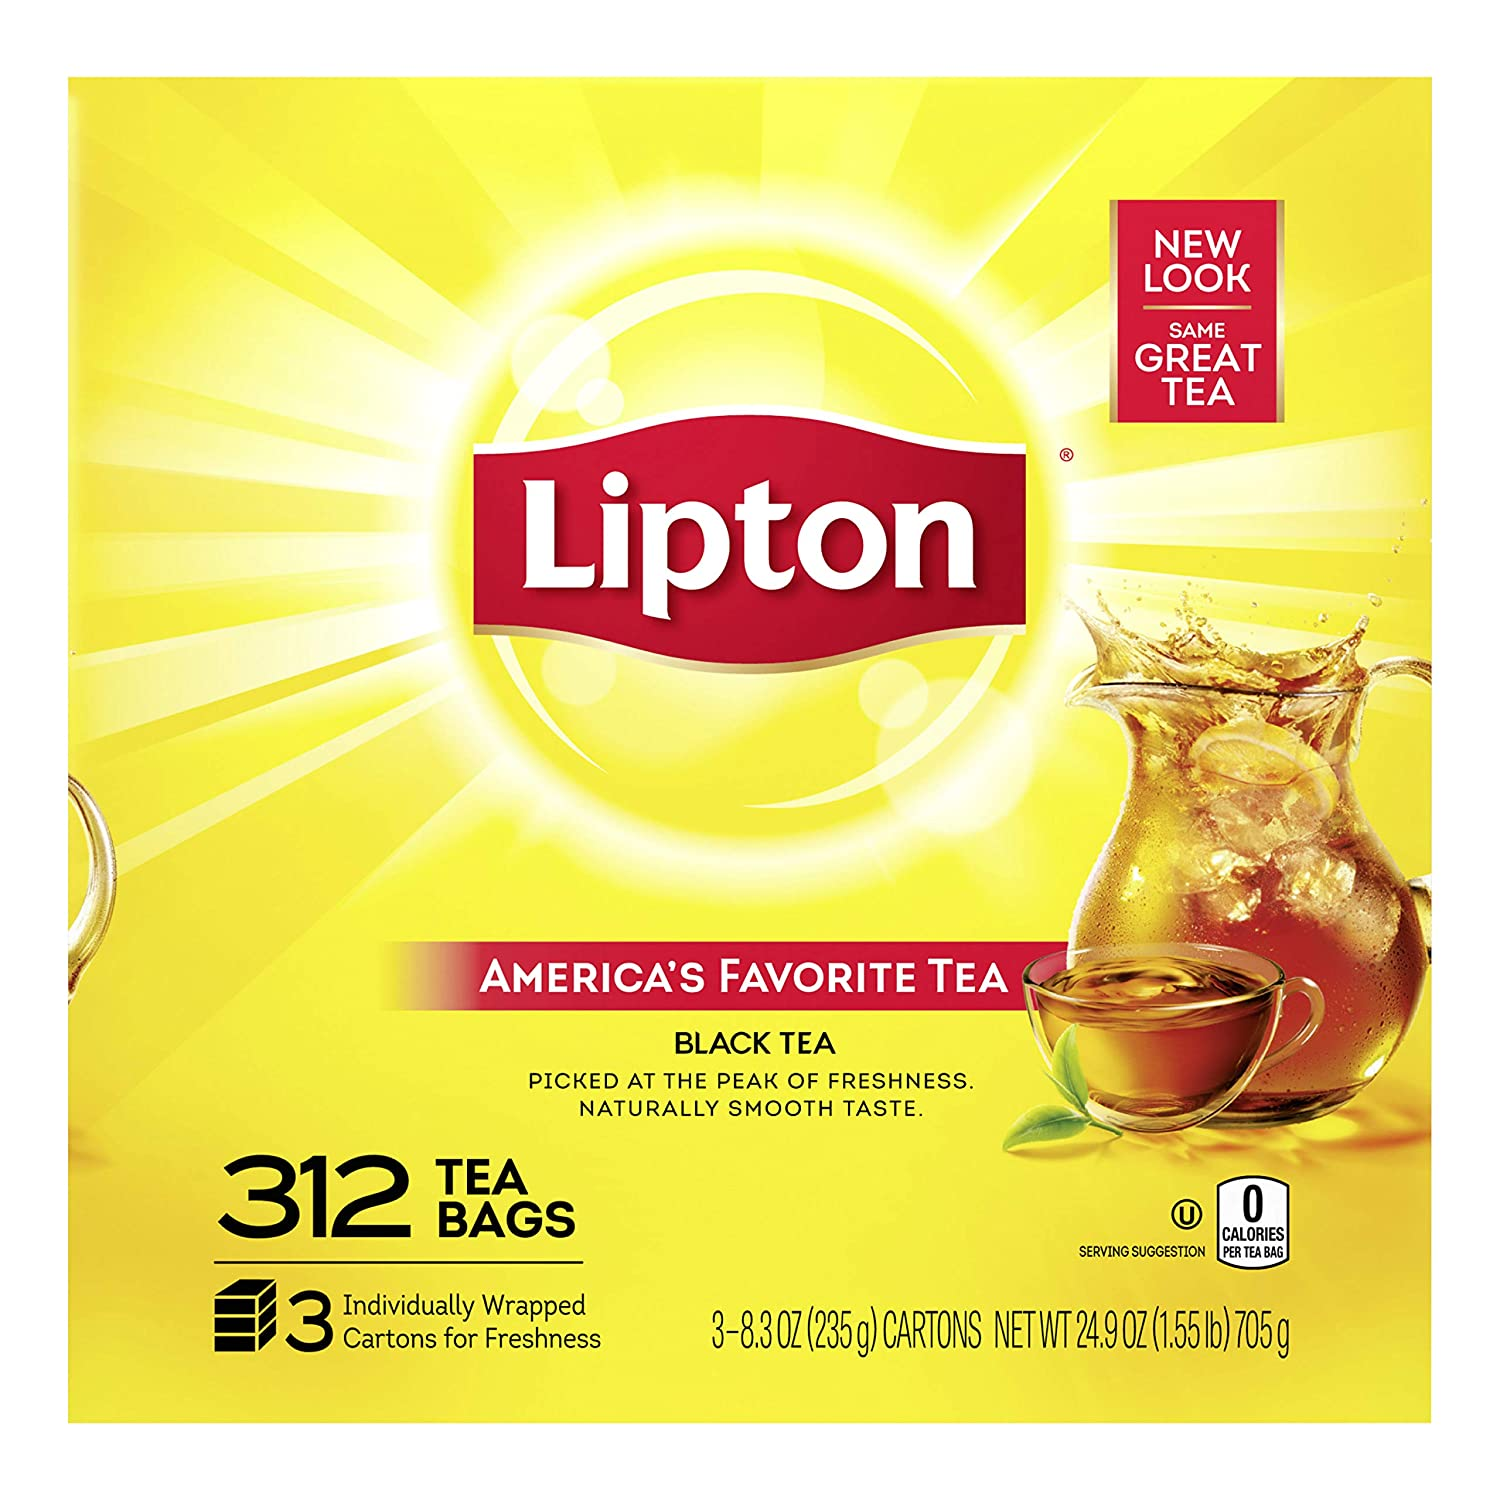 Lipton Tea Bags For A Naturally Smooth Taste Black Tea Can Help Support a Healthy Heart